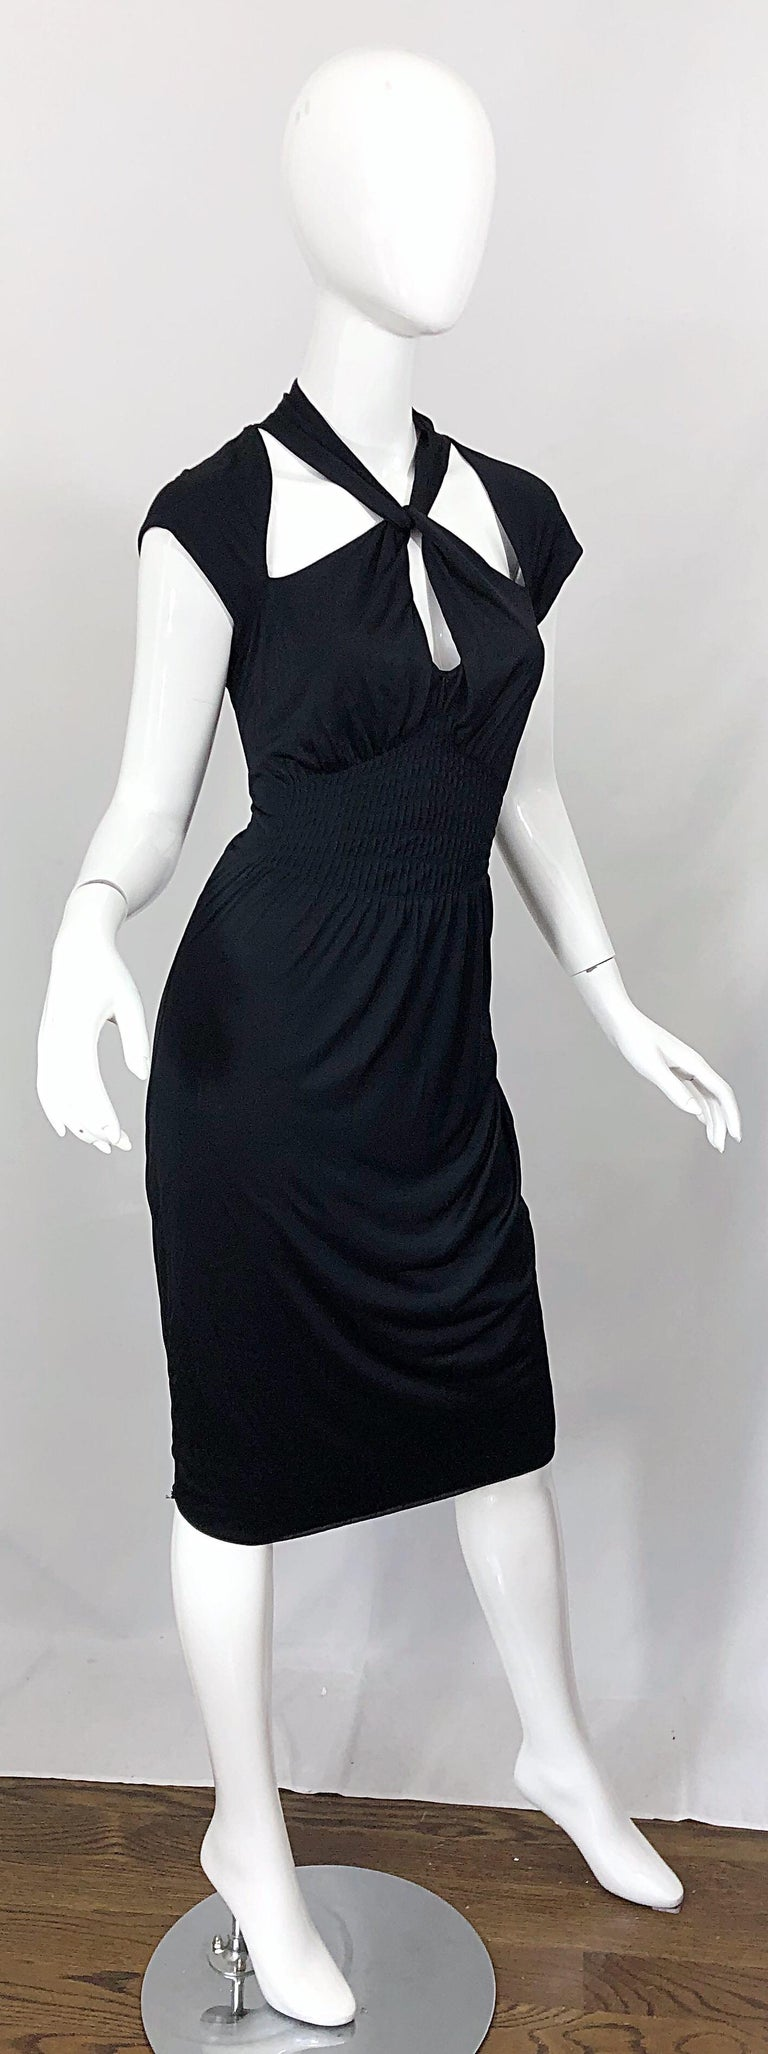 Gucci Tom Ford Fall 2003 Runway Black Cut Out Backless Stretch Jersey Dress  For Sale 7